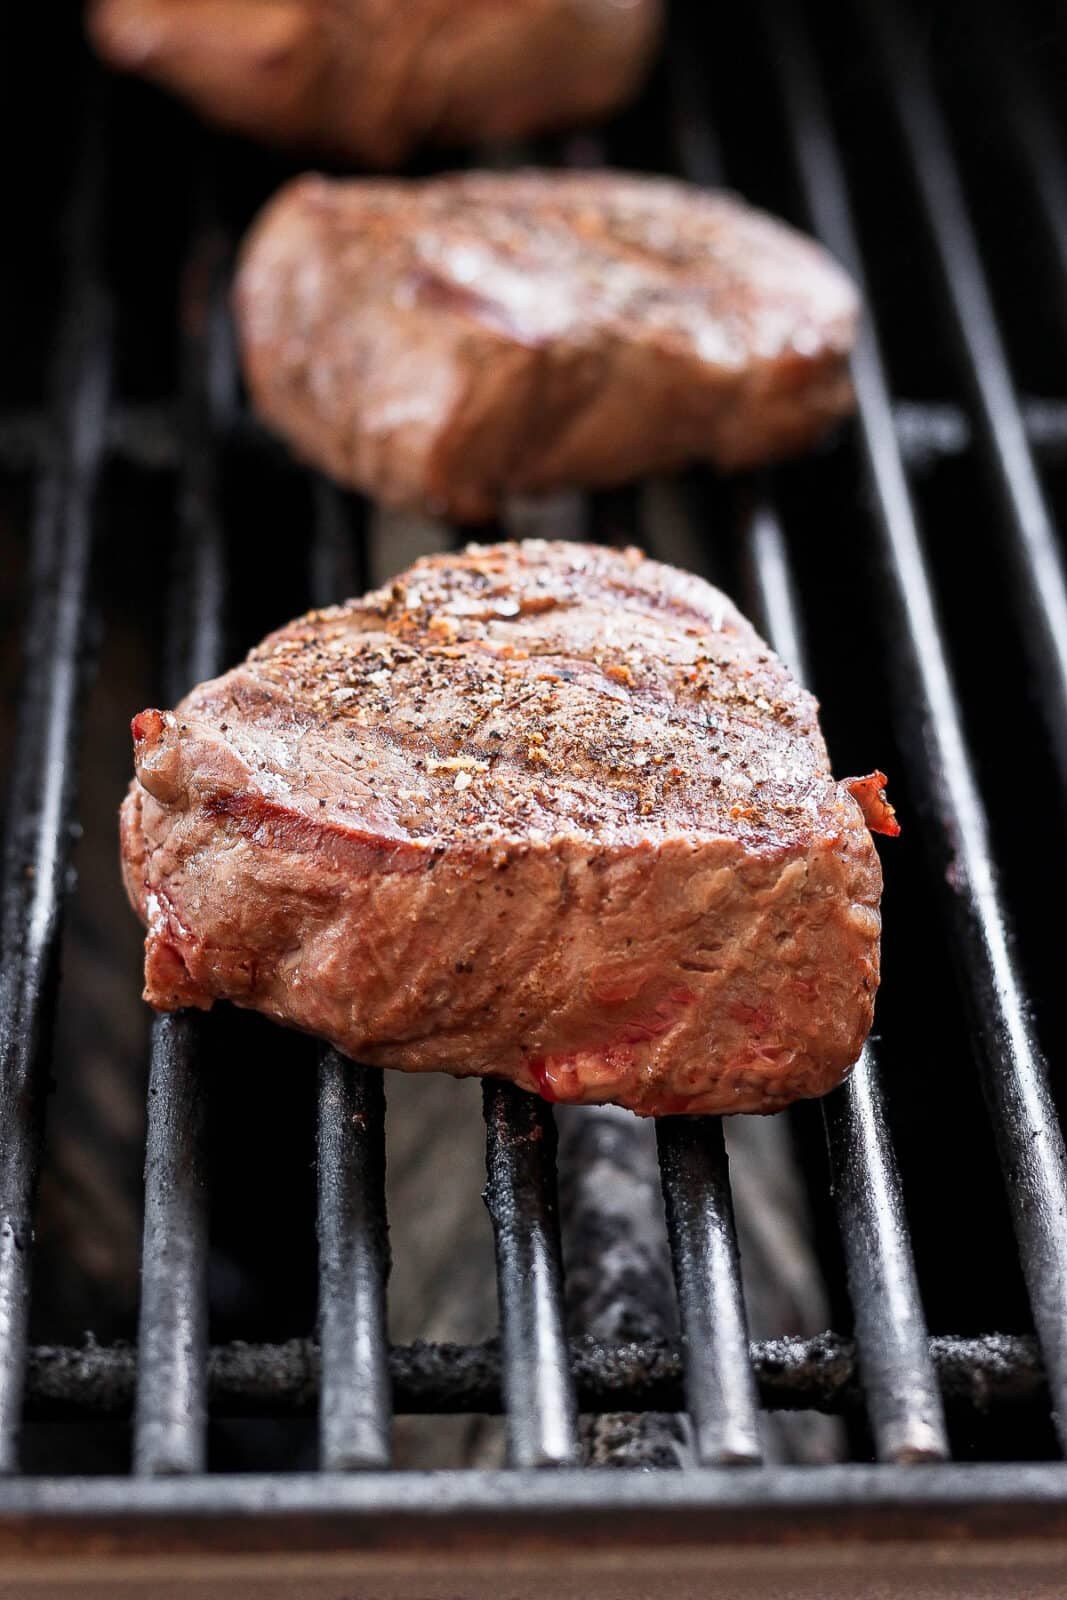 Three steaks on the grill.